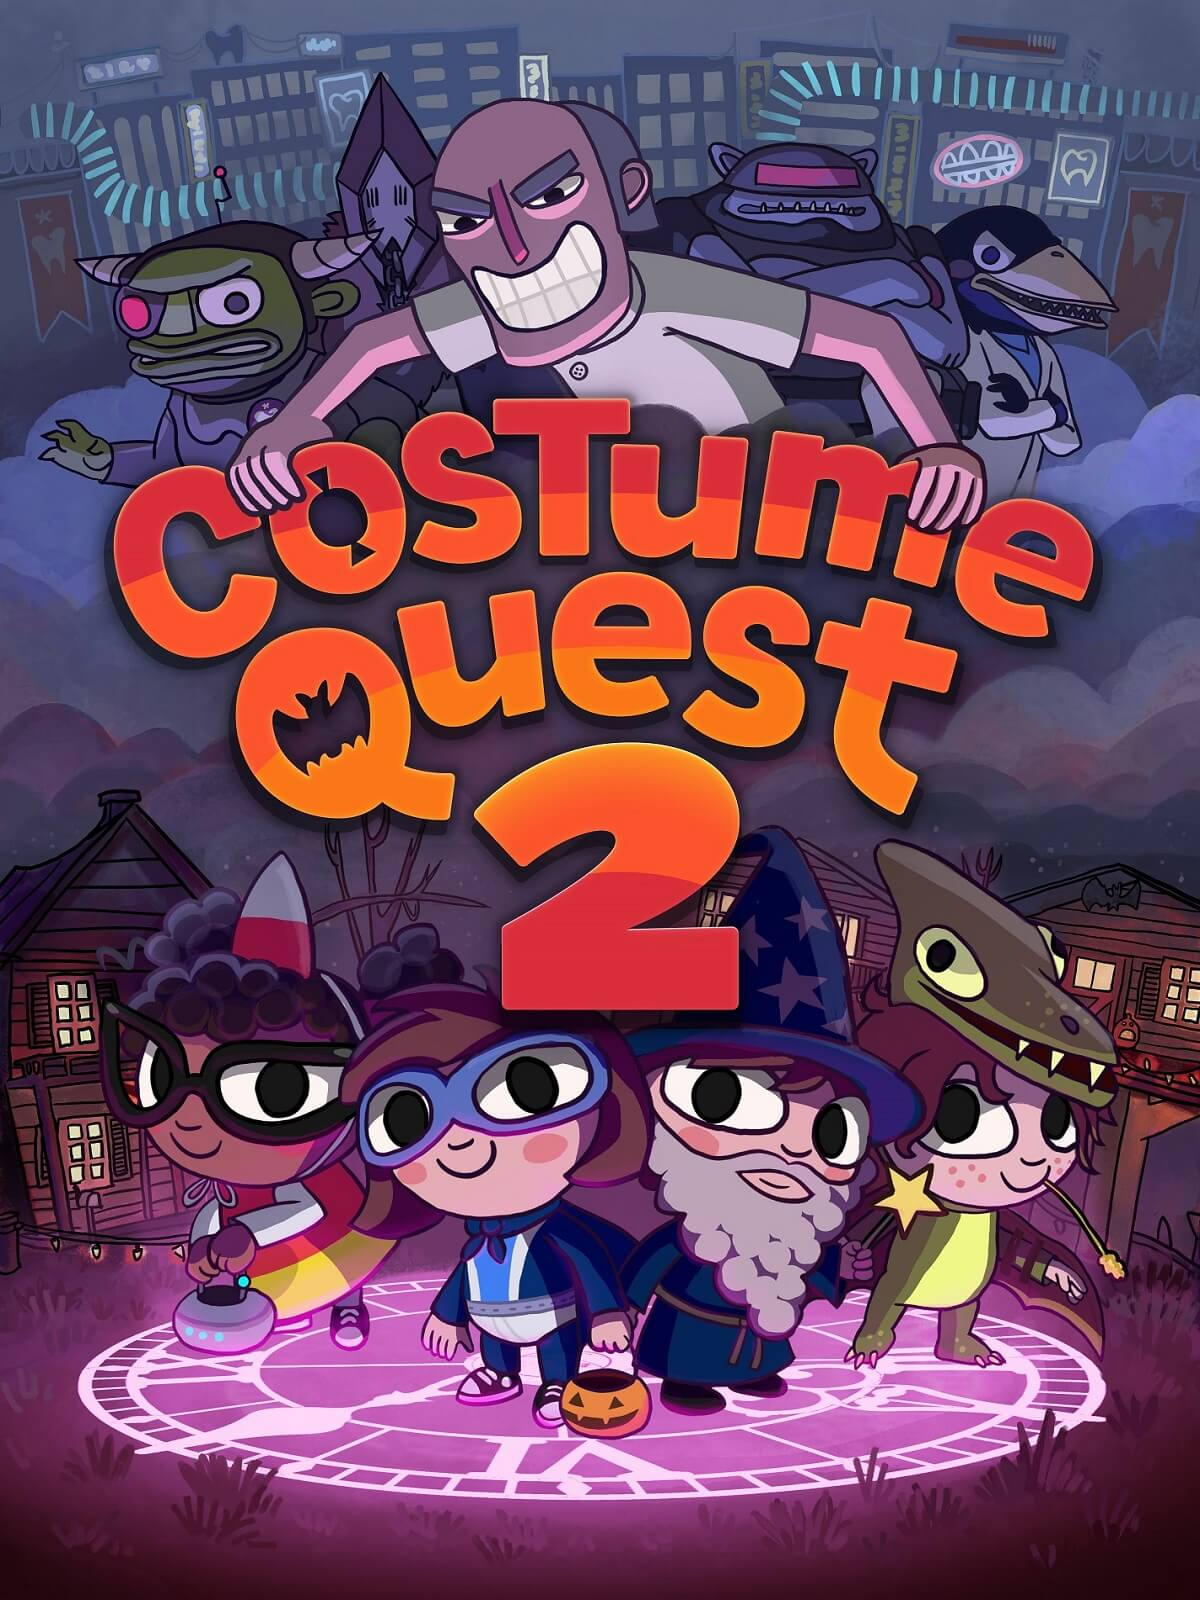 Costume Quest 2 - Sequel to the Halloween adventure from Double Fine